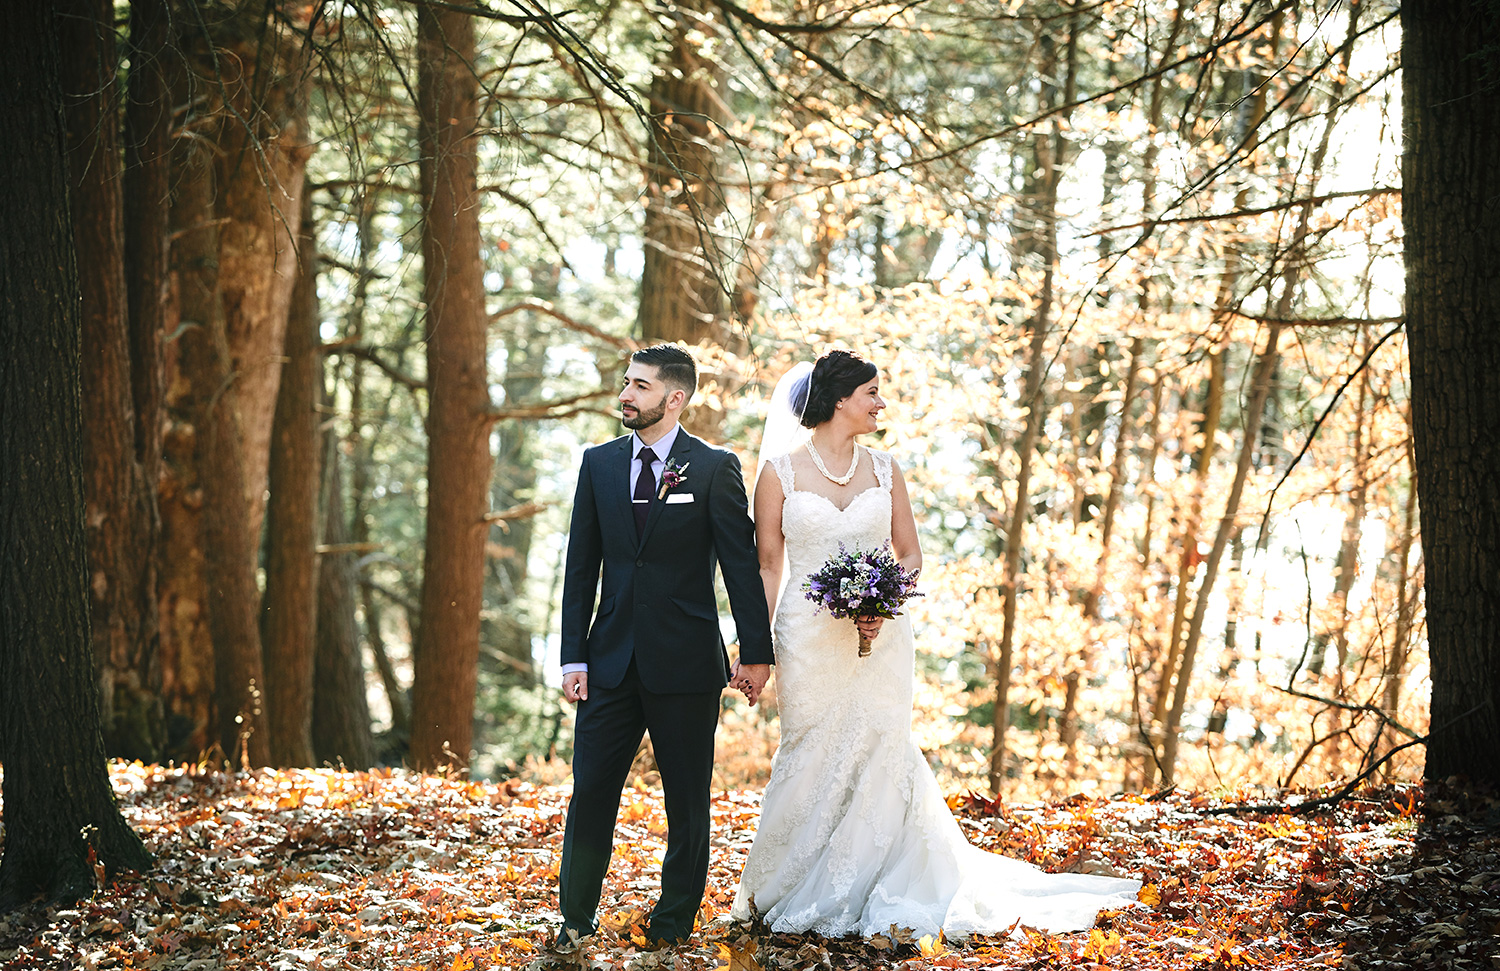 161119_ArrowParkLake&LodgeWedding_By_BriJohnsonWeddings_0074.jpg